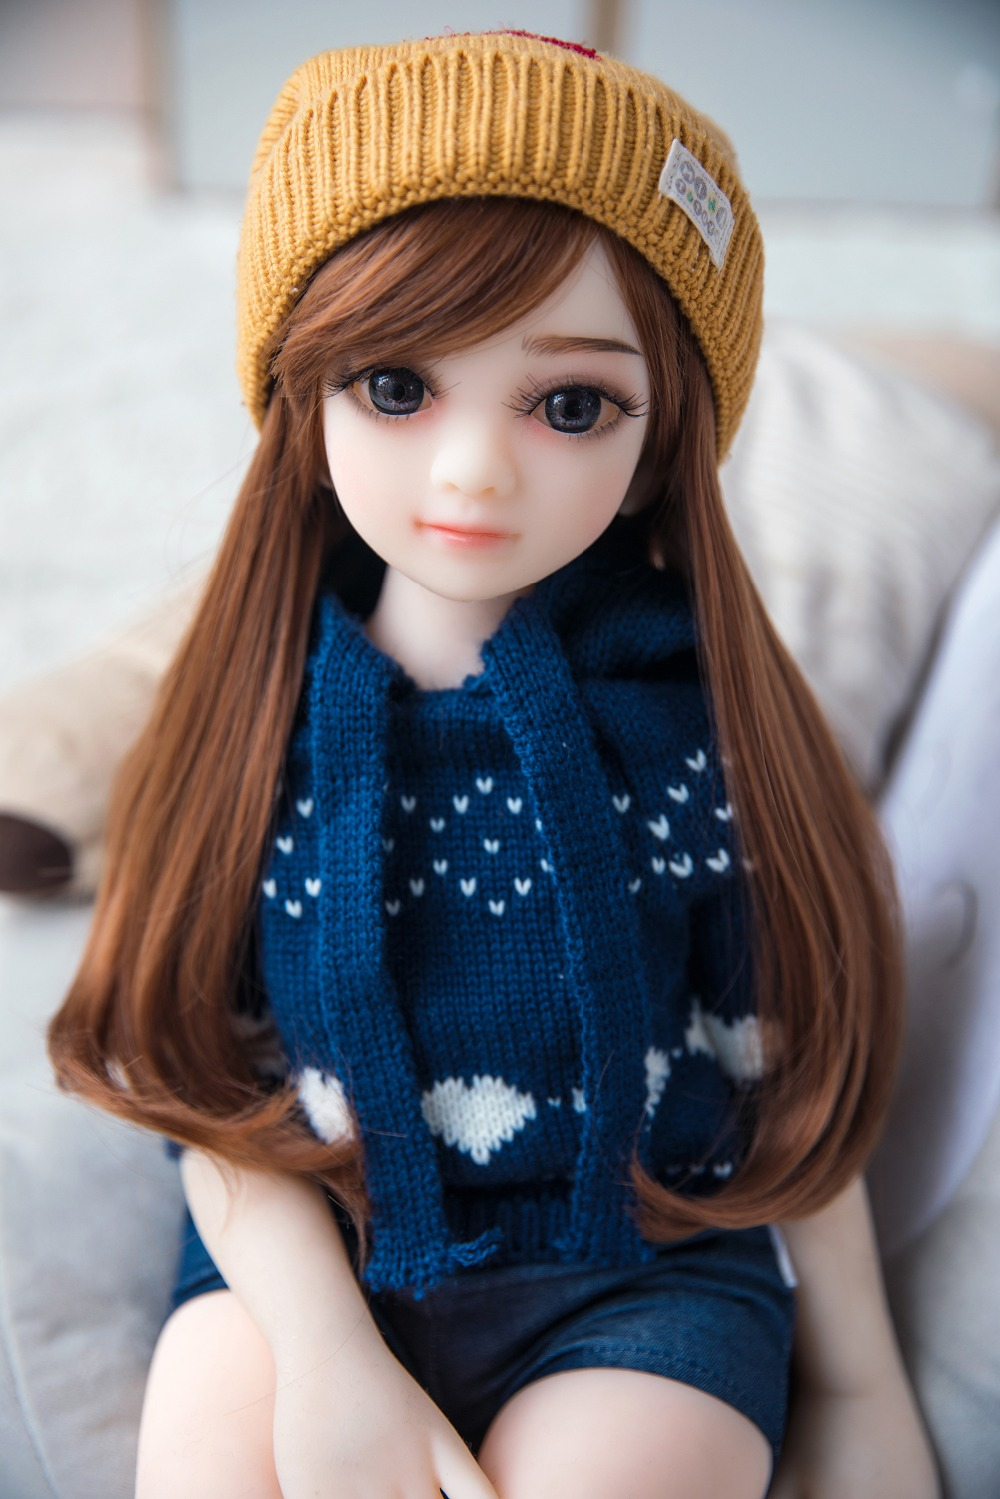 Sexy Soft TPE Silicone Doll 65cm Lovely Anime Head with real vagina adult toys for men